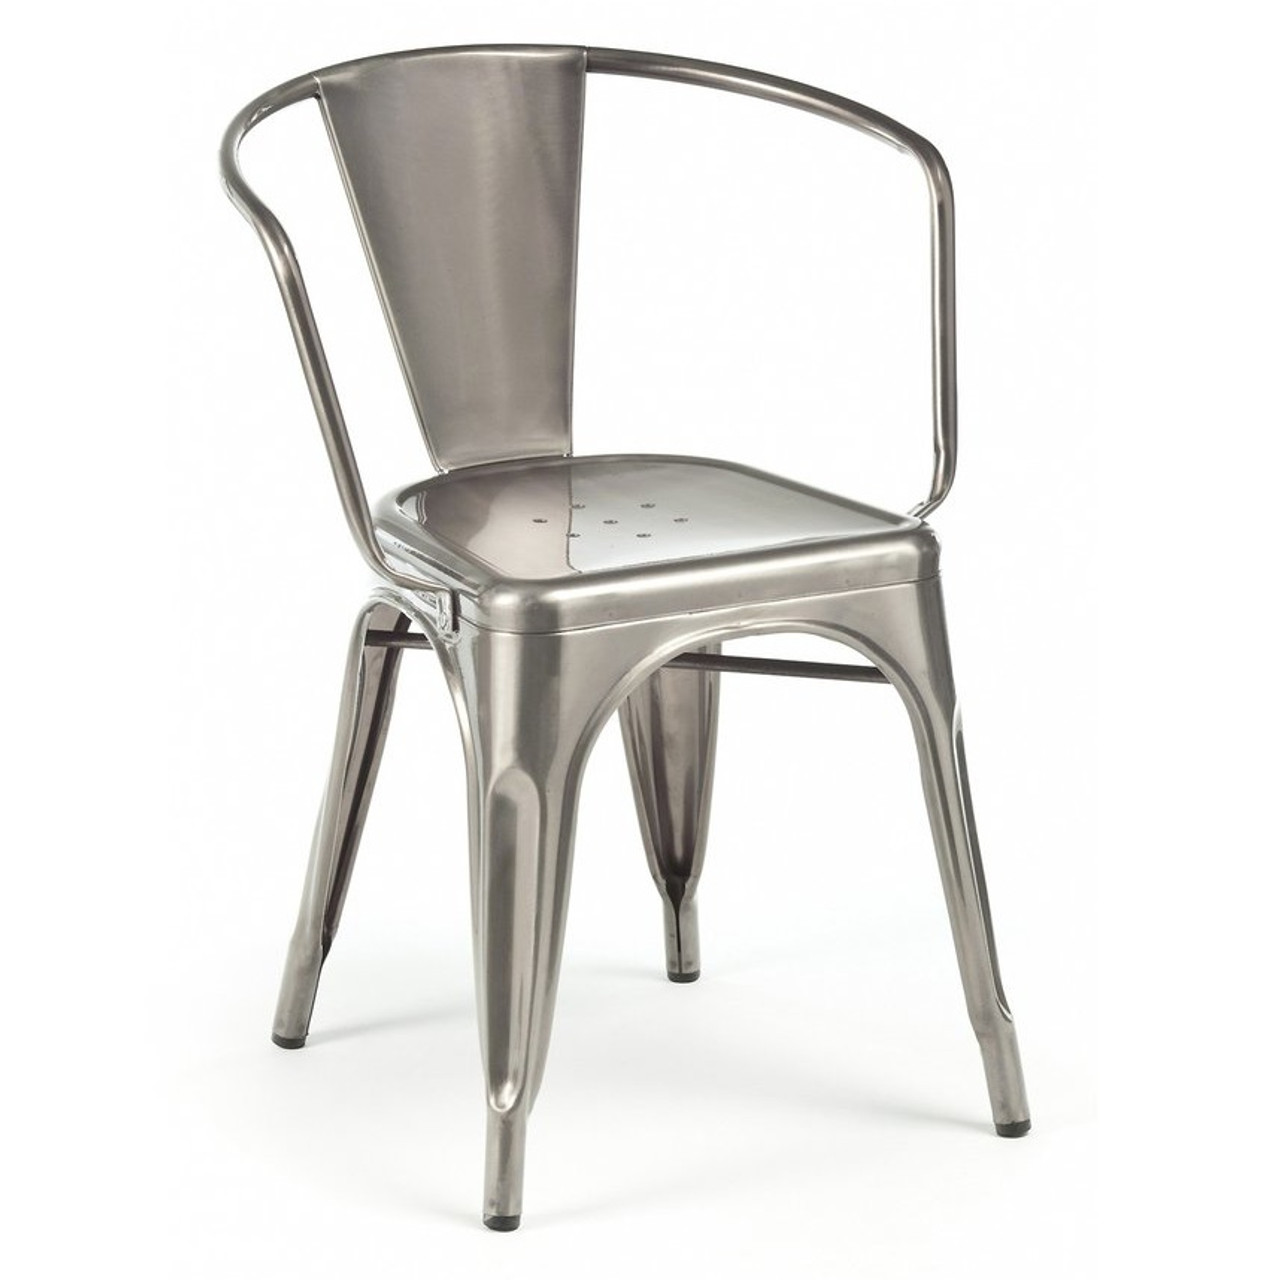 French Industrial Cafe Arm Chairs